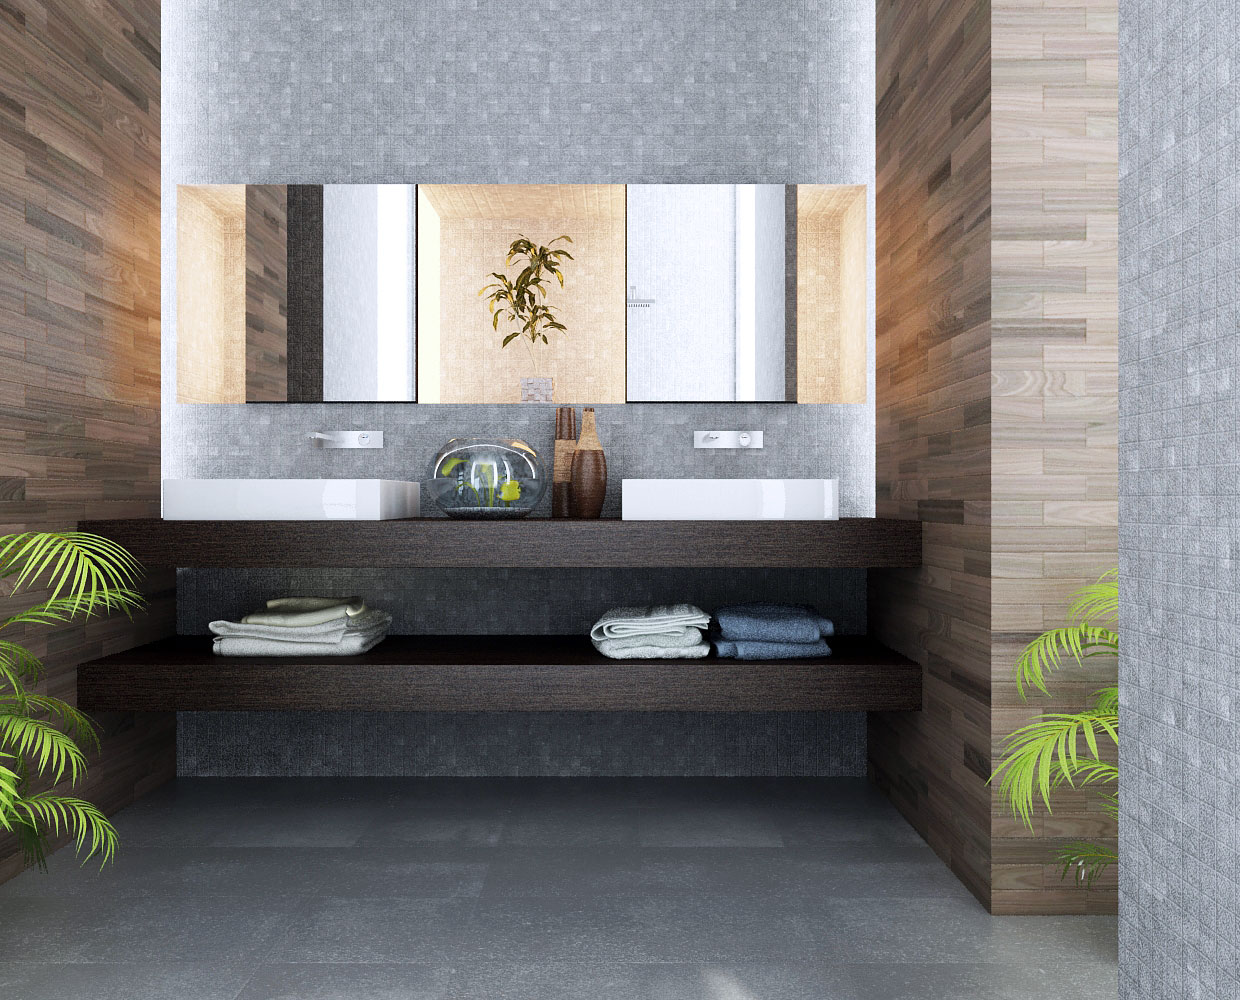 Impressive Modern Bathroom Design Ideas 1240 x 1000 · 298 kB · jpeg